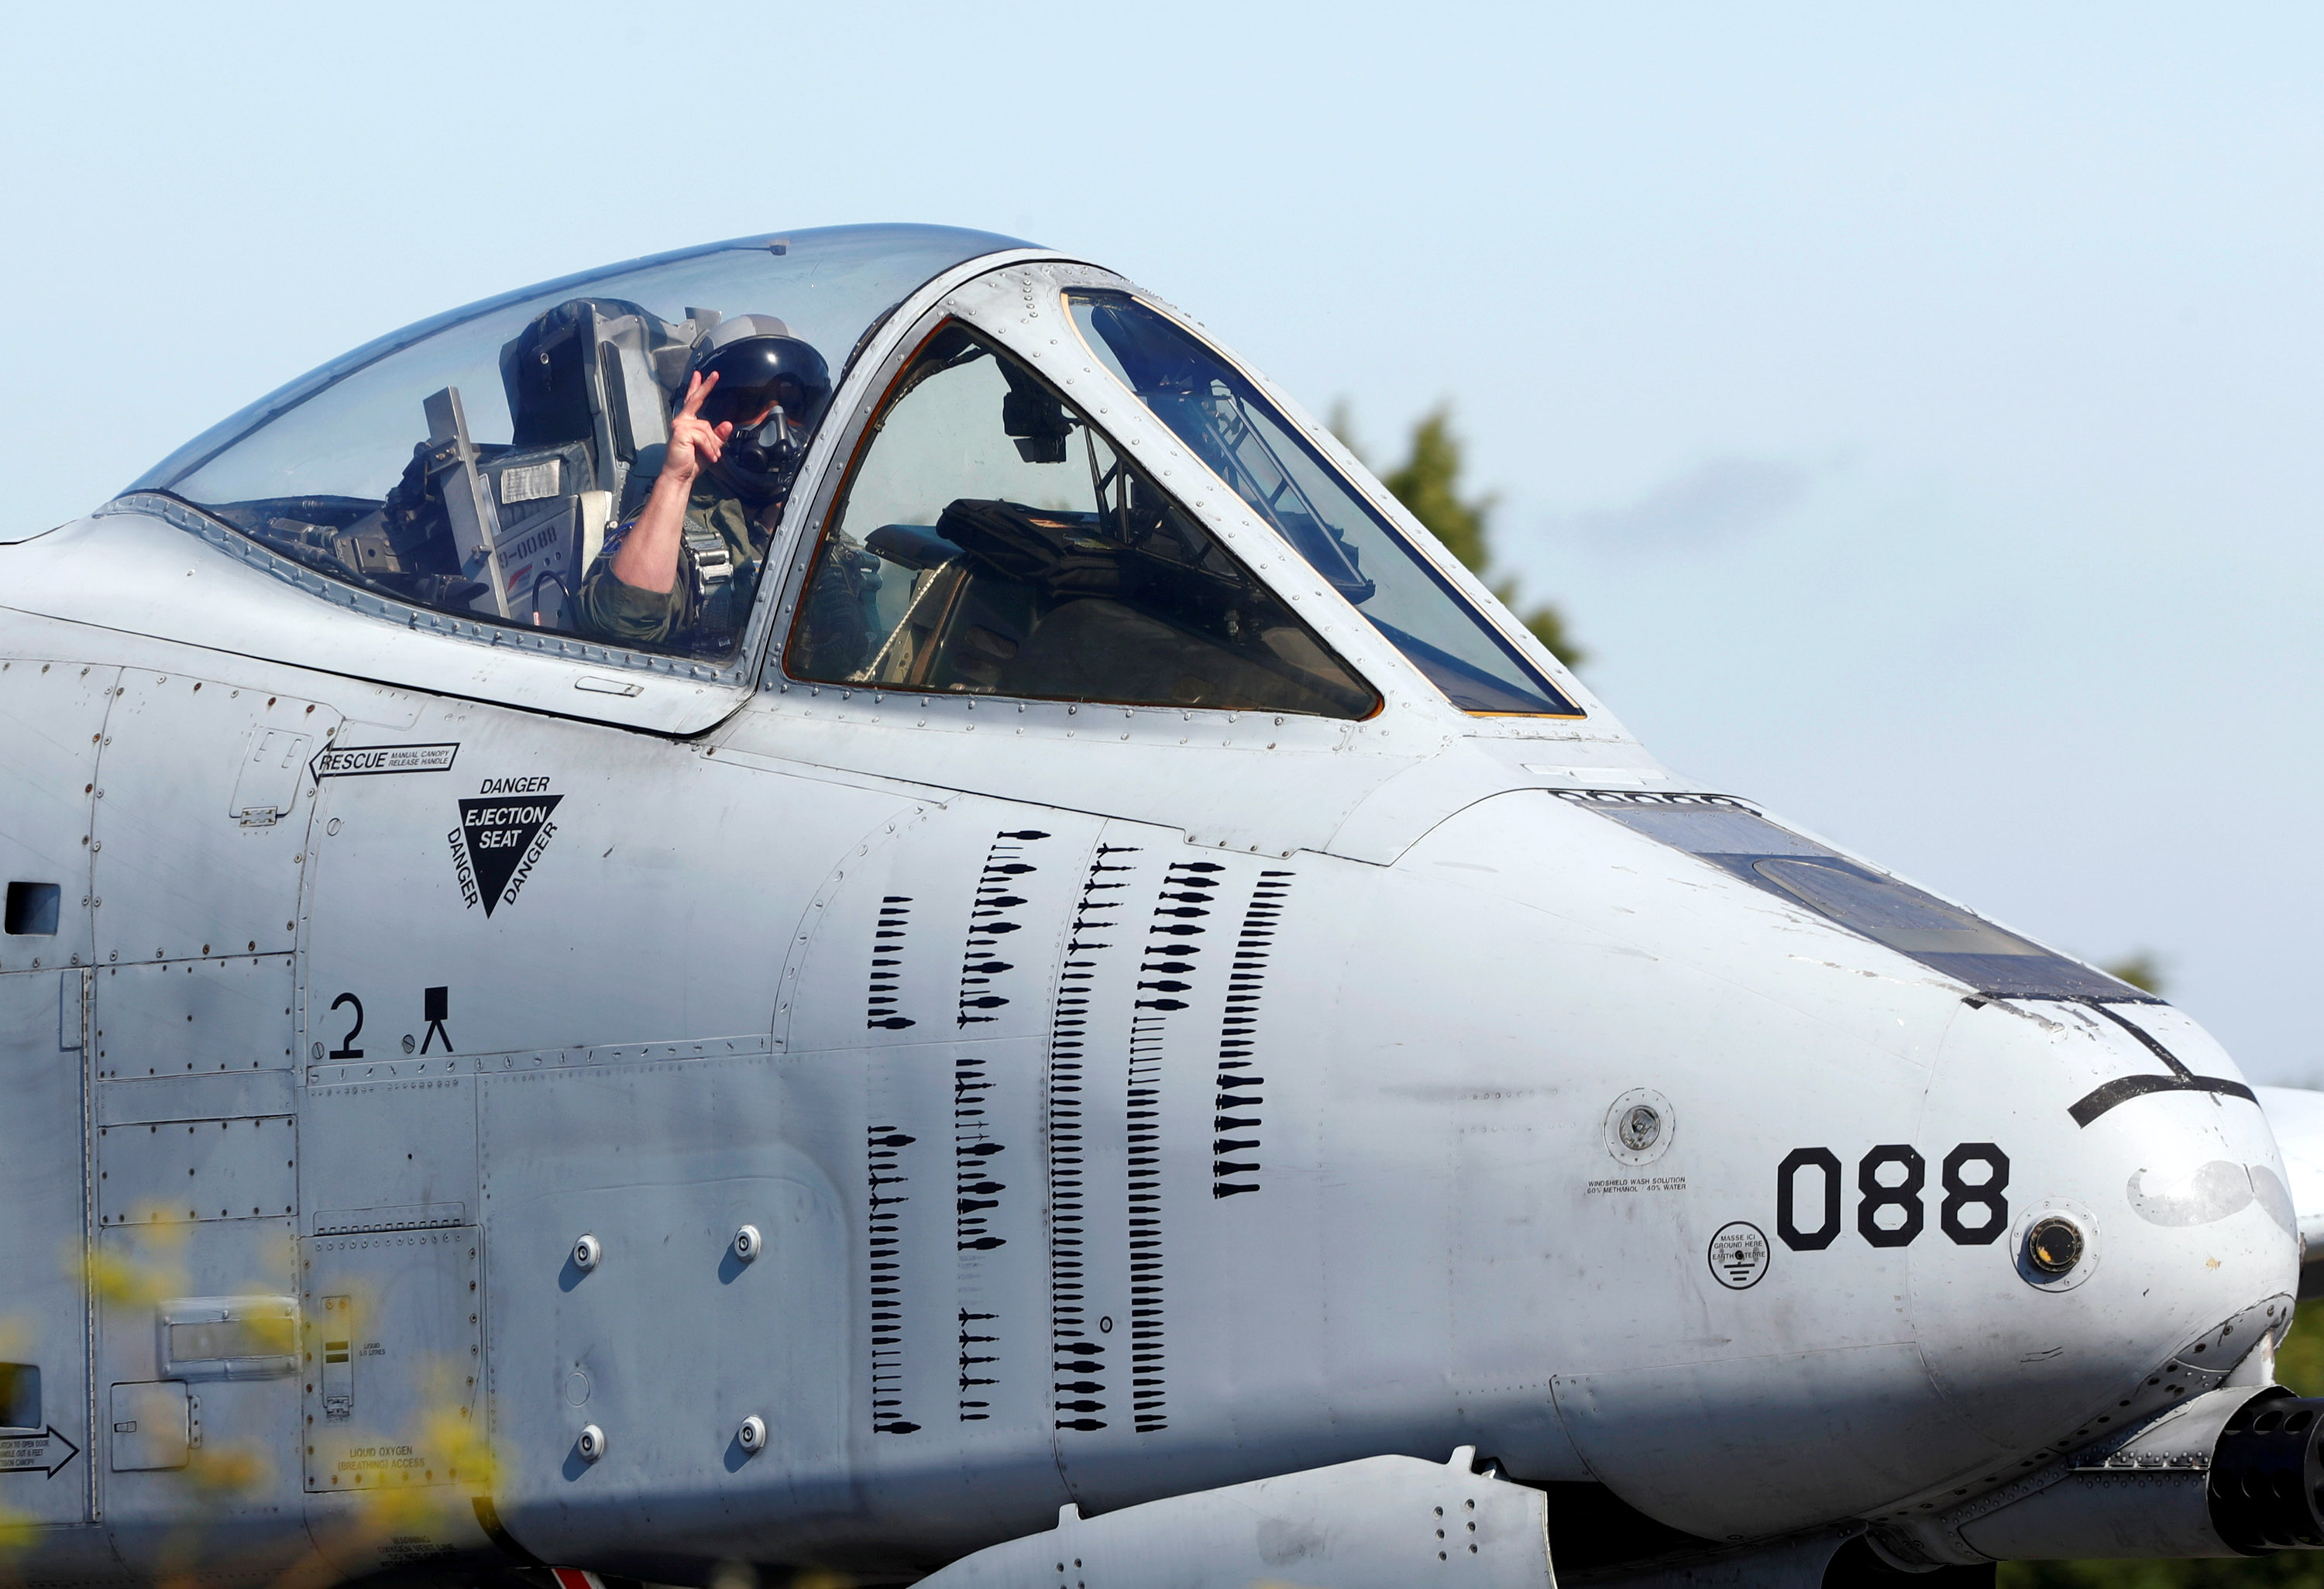 """U.S. Air Force attack aircraft A-10 """"Thunderbolt"""" pilot reacts as he takes part in a landing exercise on a motorway near Jagala, Estonia, August 10, 2017."""